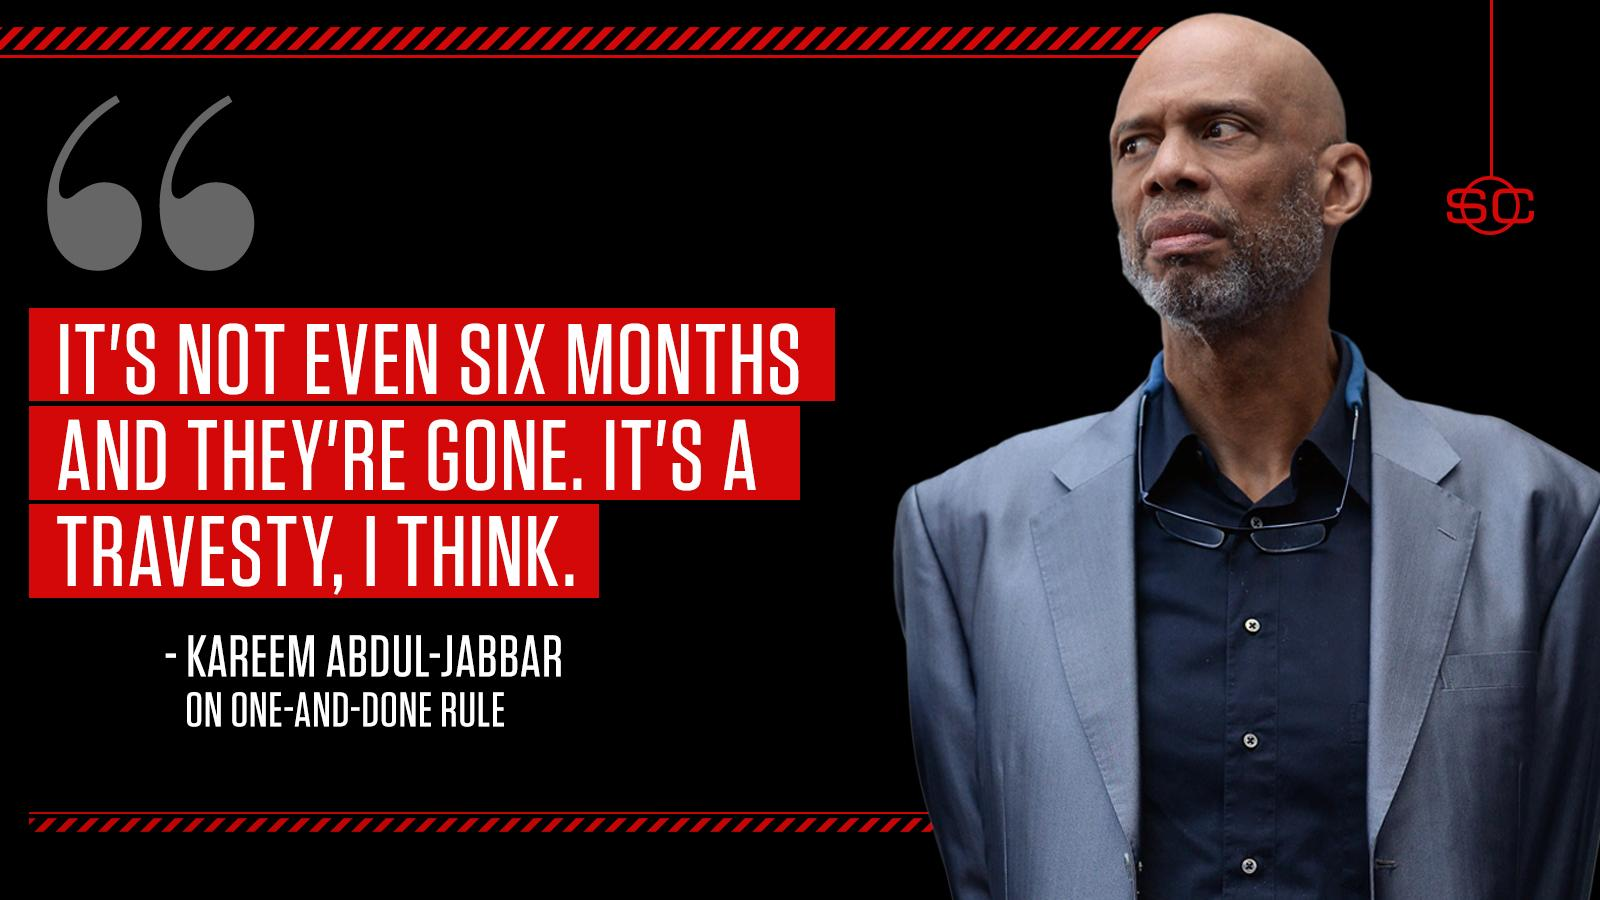 Kareem Abdul-Jabbar believes the one-and-done rule comes between players and a college education. https://t.co/4Wh3rptB2p